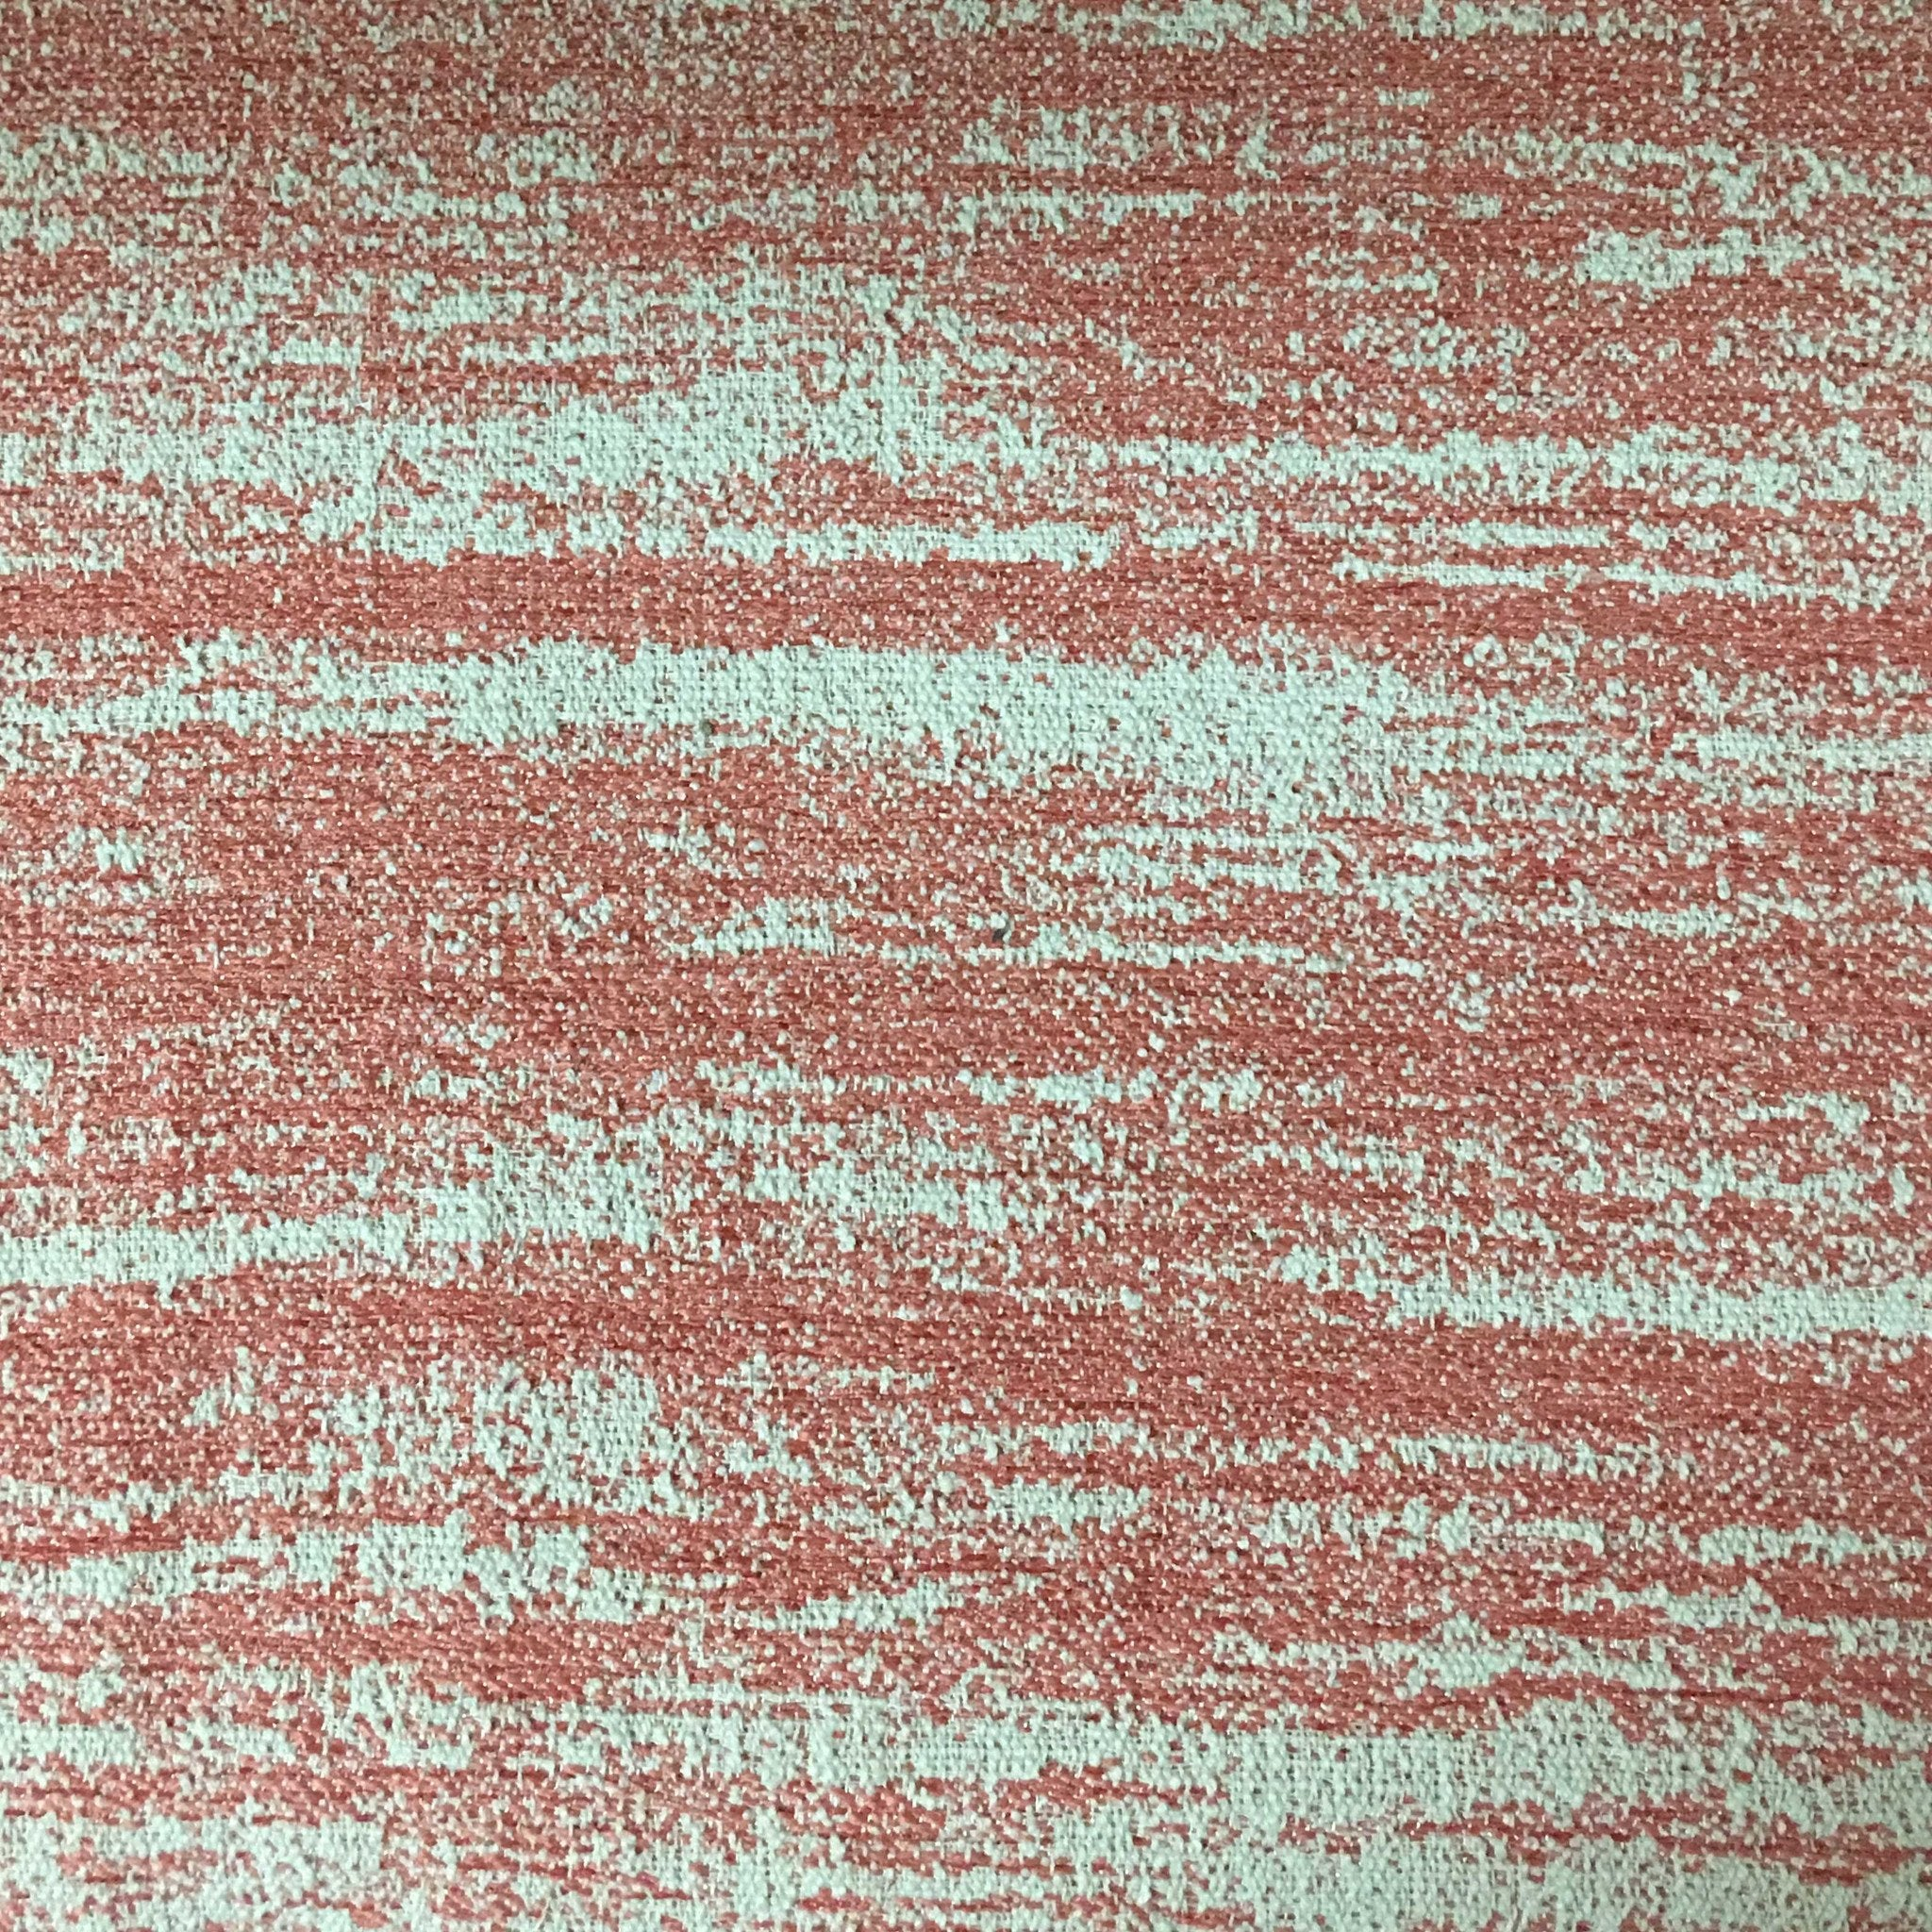 Sandy woven texture upholstery fabric by the yard 16 for Upholstery fabric for sale